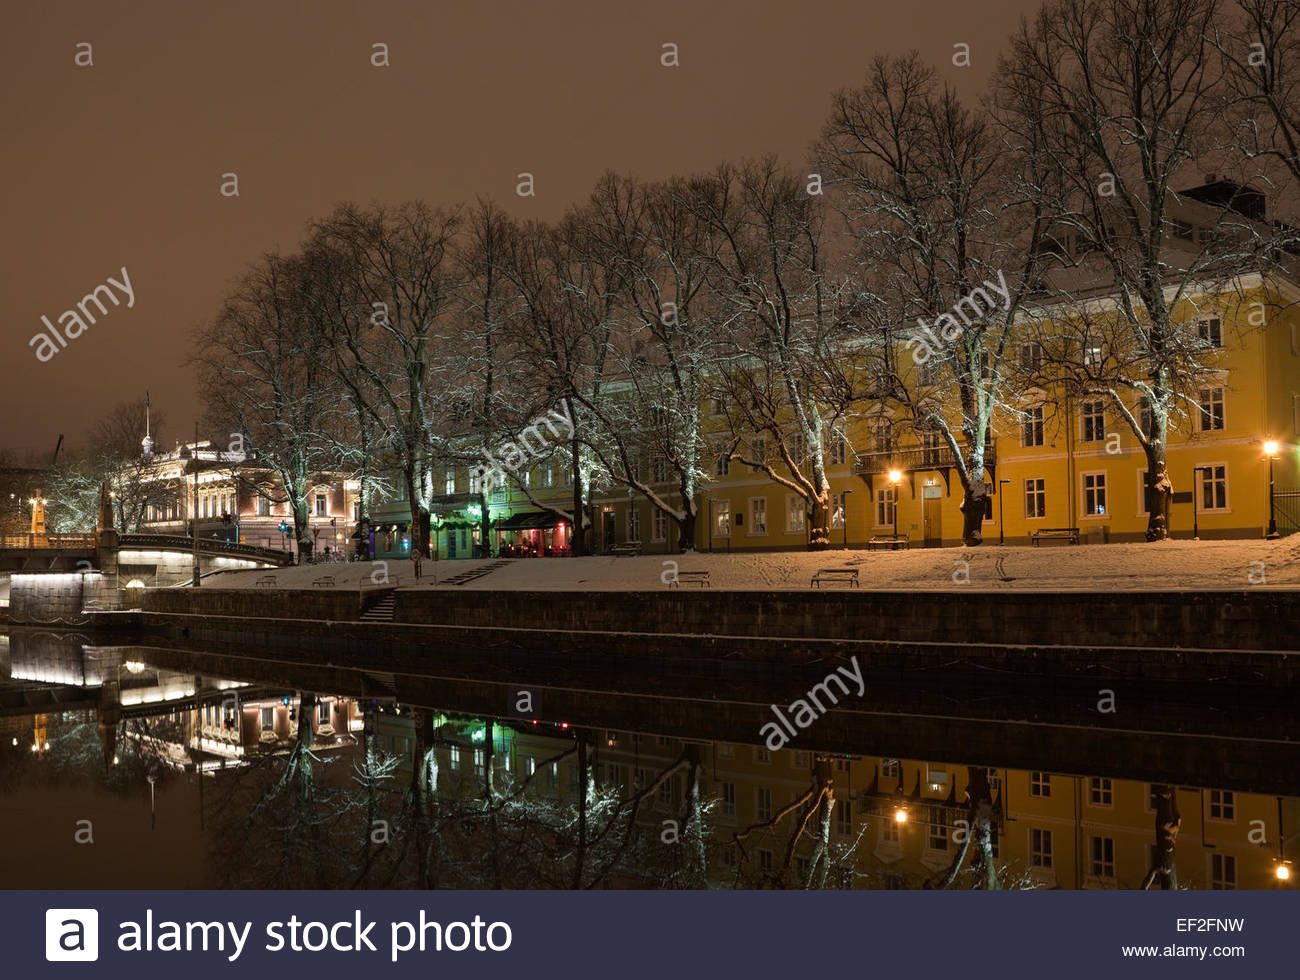 Turku in an old town by the river Aura - Stock Image